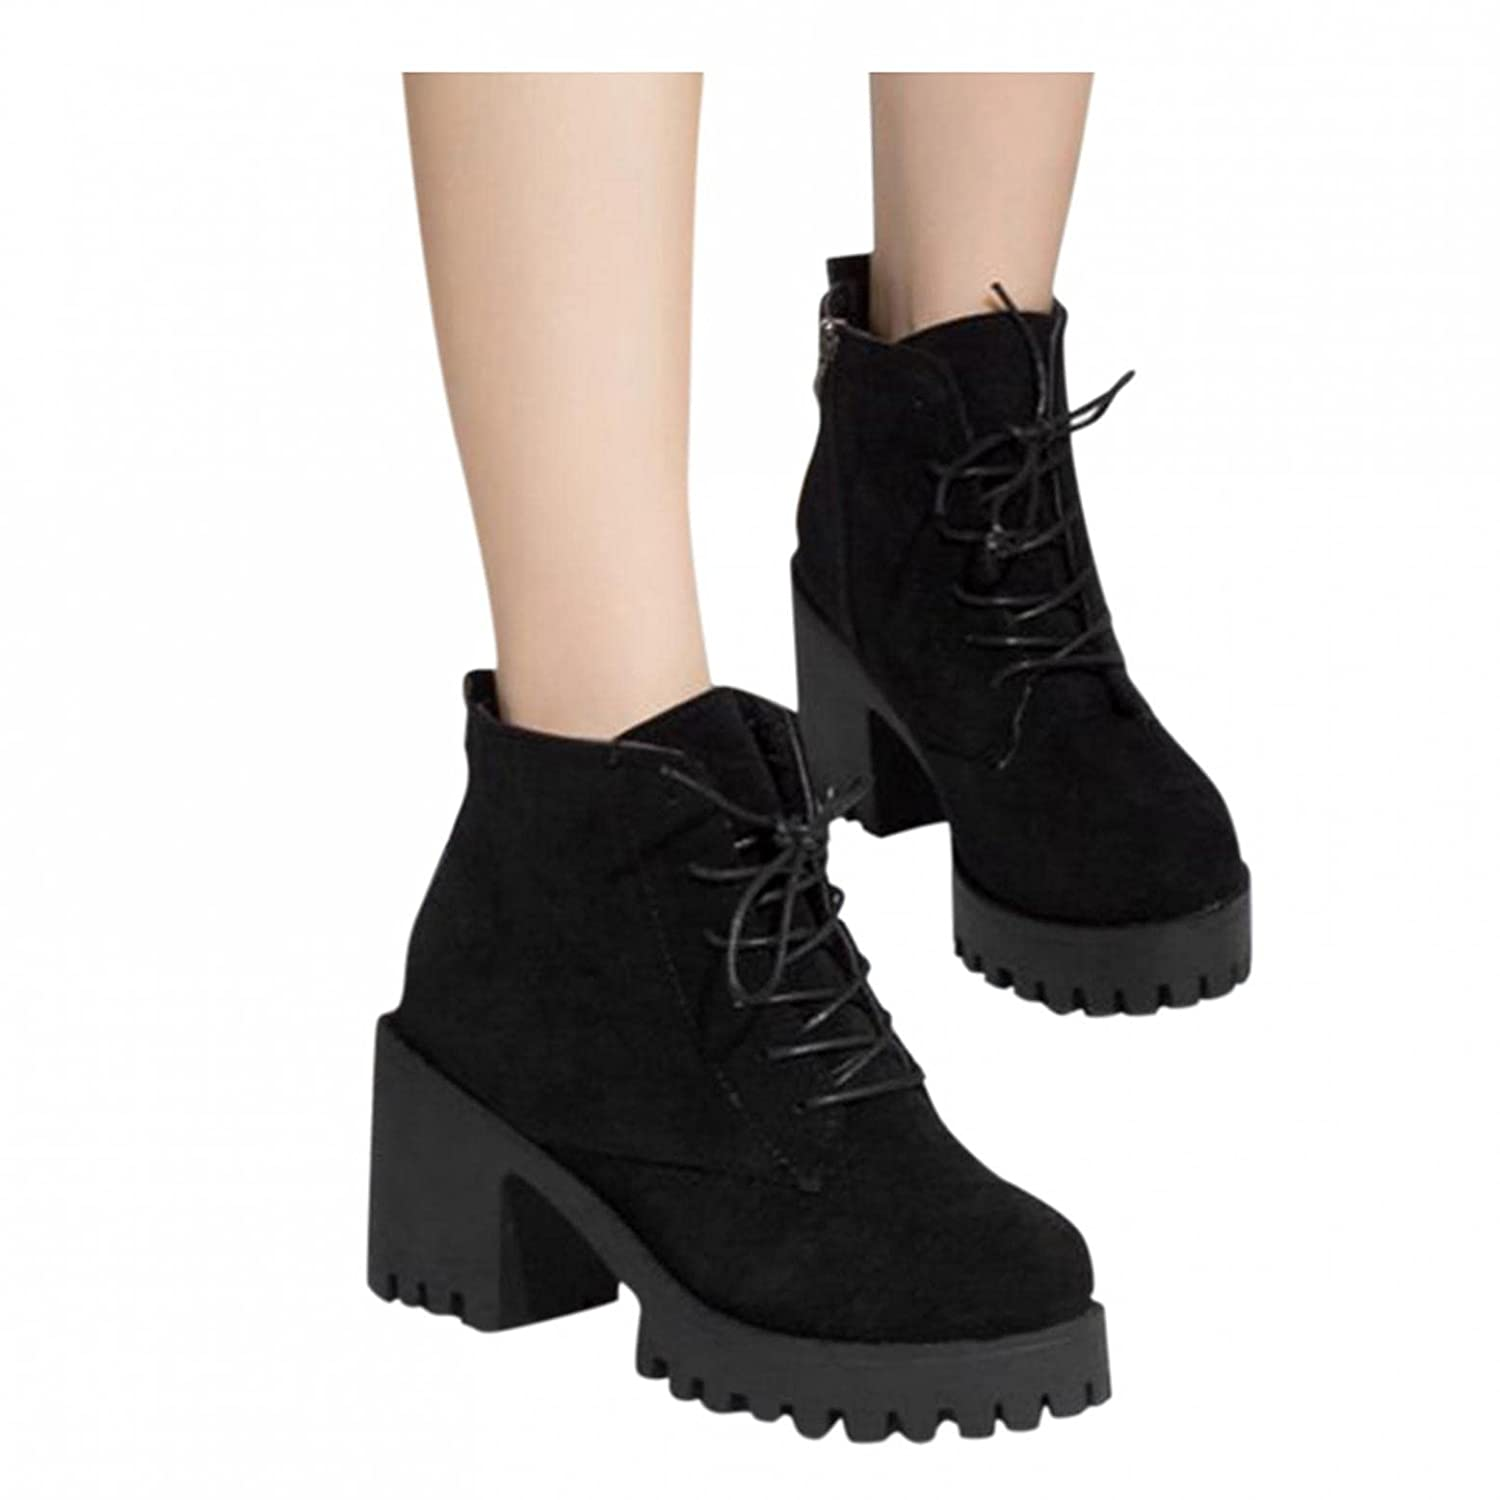 Kledbying Women Autumn Winter Solid Color Ankle Casual Boots Short Shoes Breathable Comfy Leisure Snow Boots